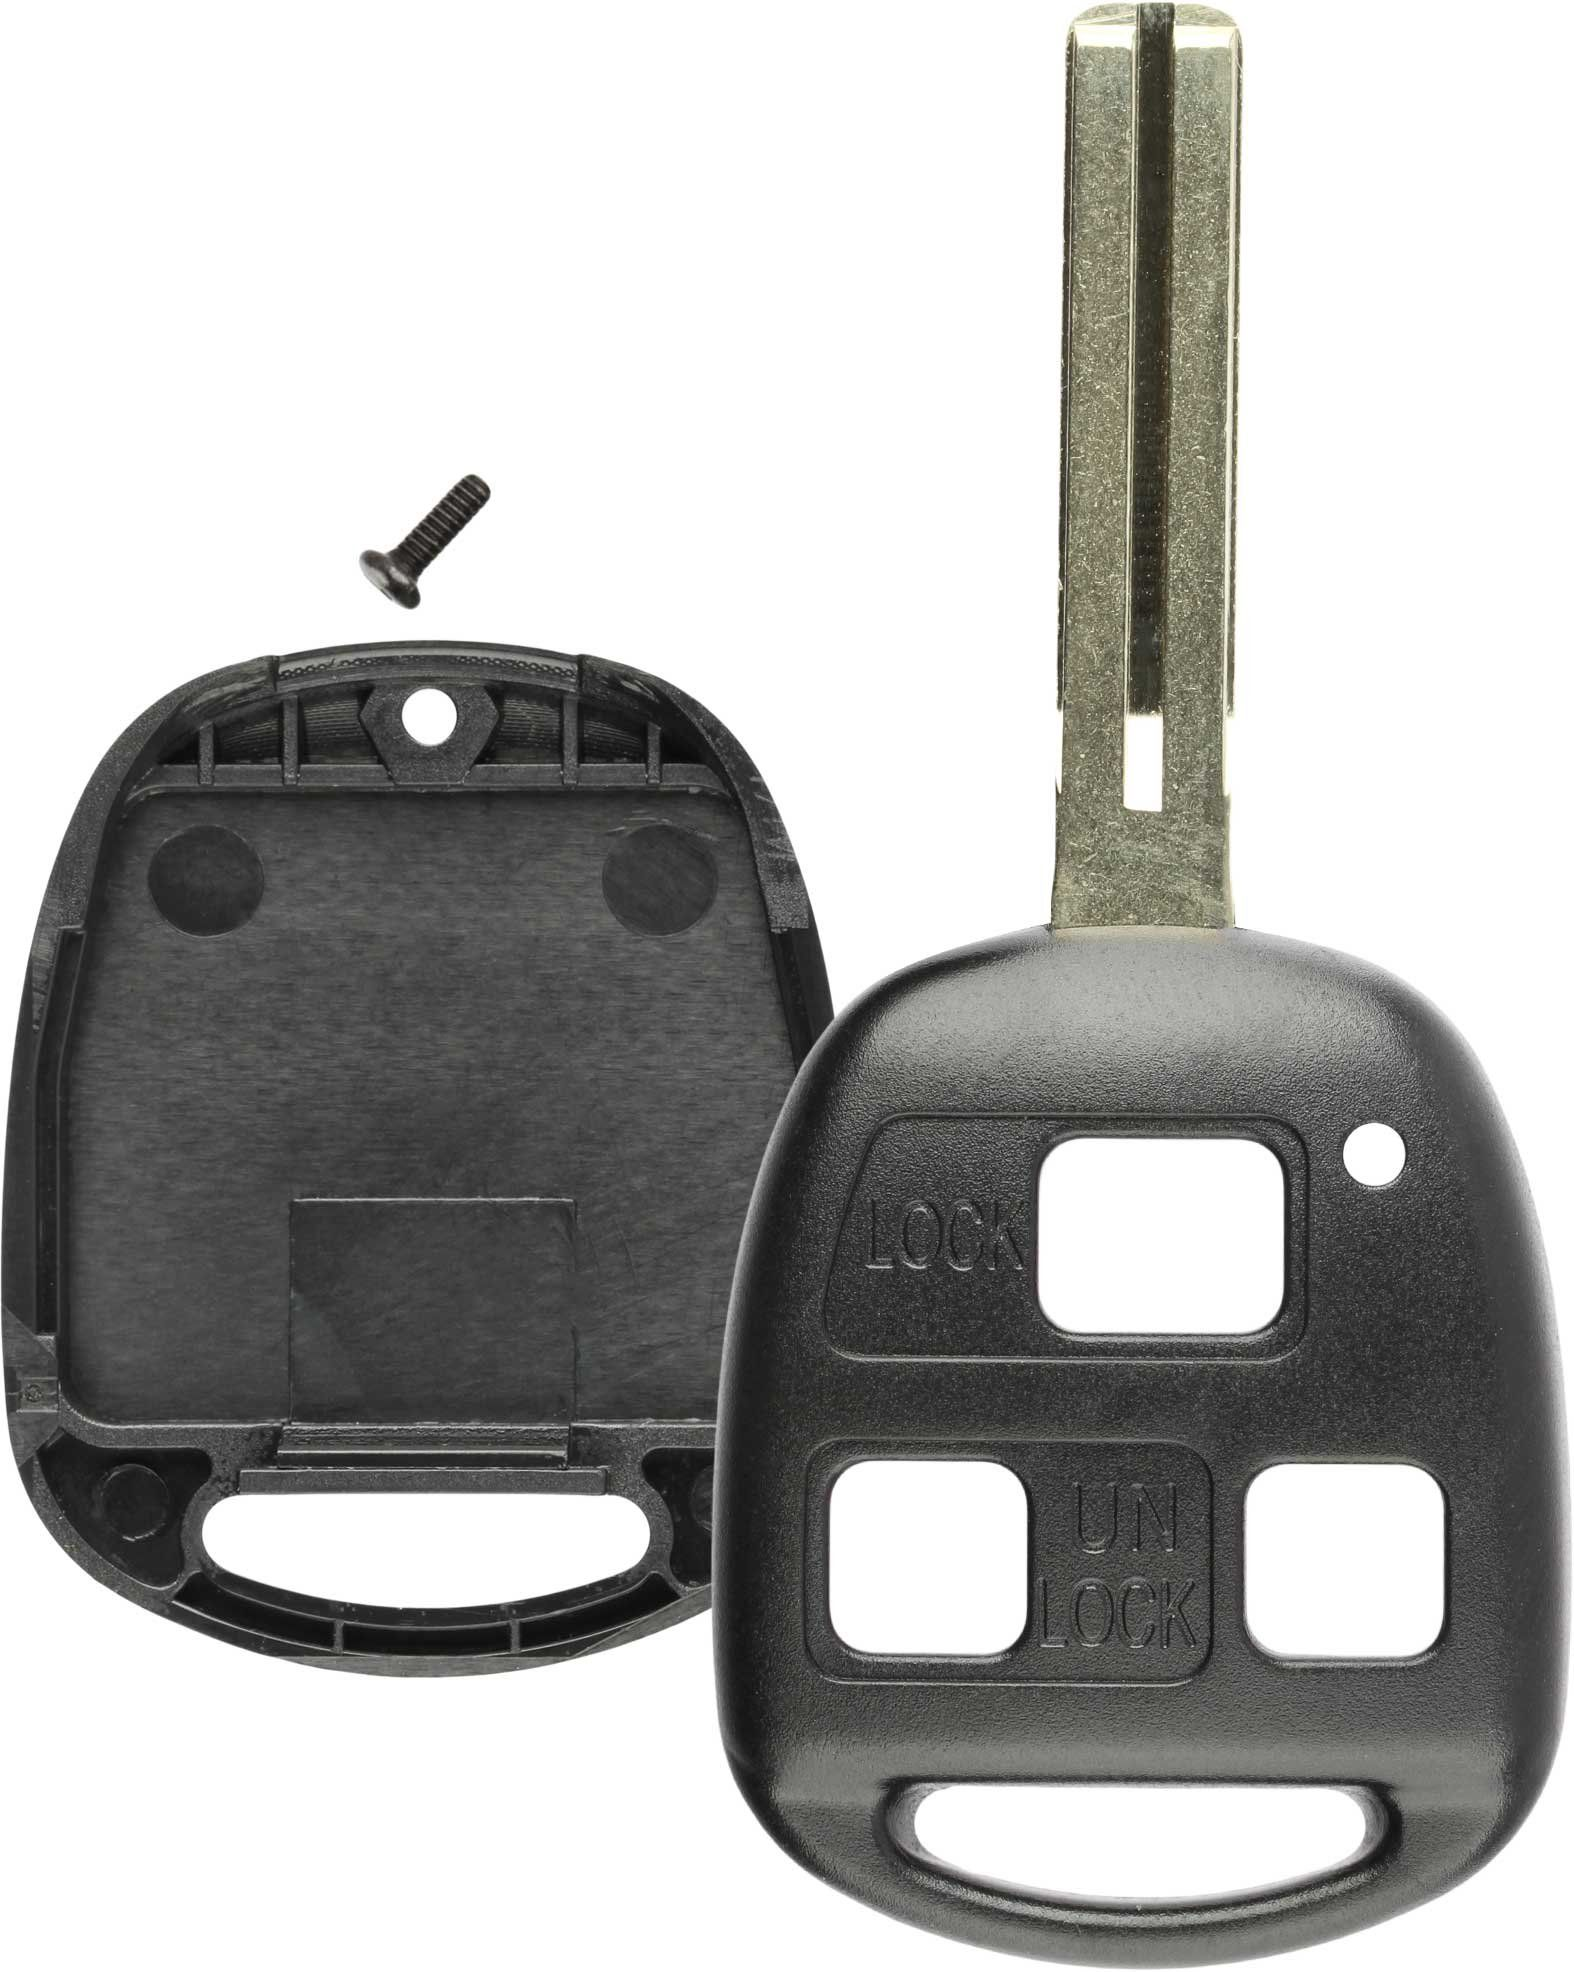 discount keyless replacement keyless entry remote fob uncut blankdiscount keyless replacement keyless entry remote fob uncut blank key blade shell case for hyq1512v, hyq12bbt